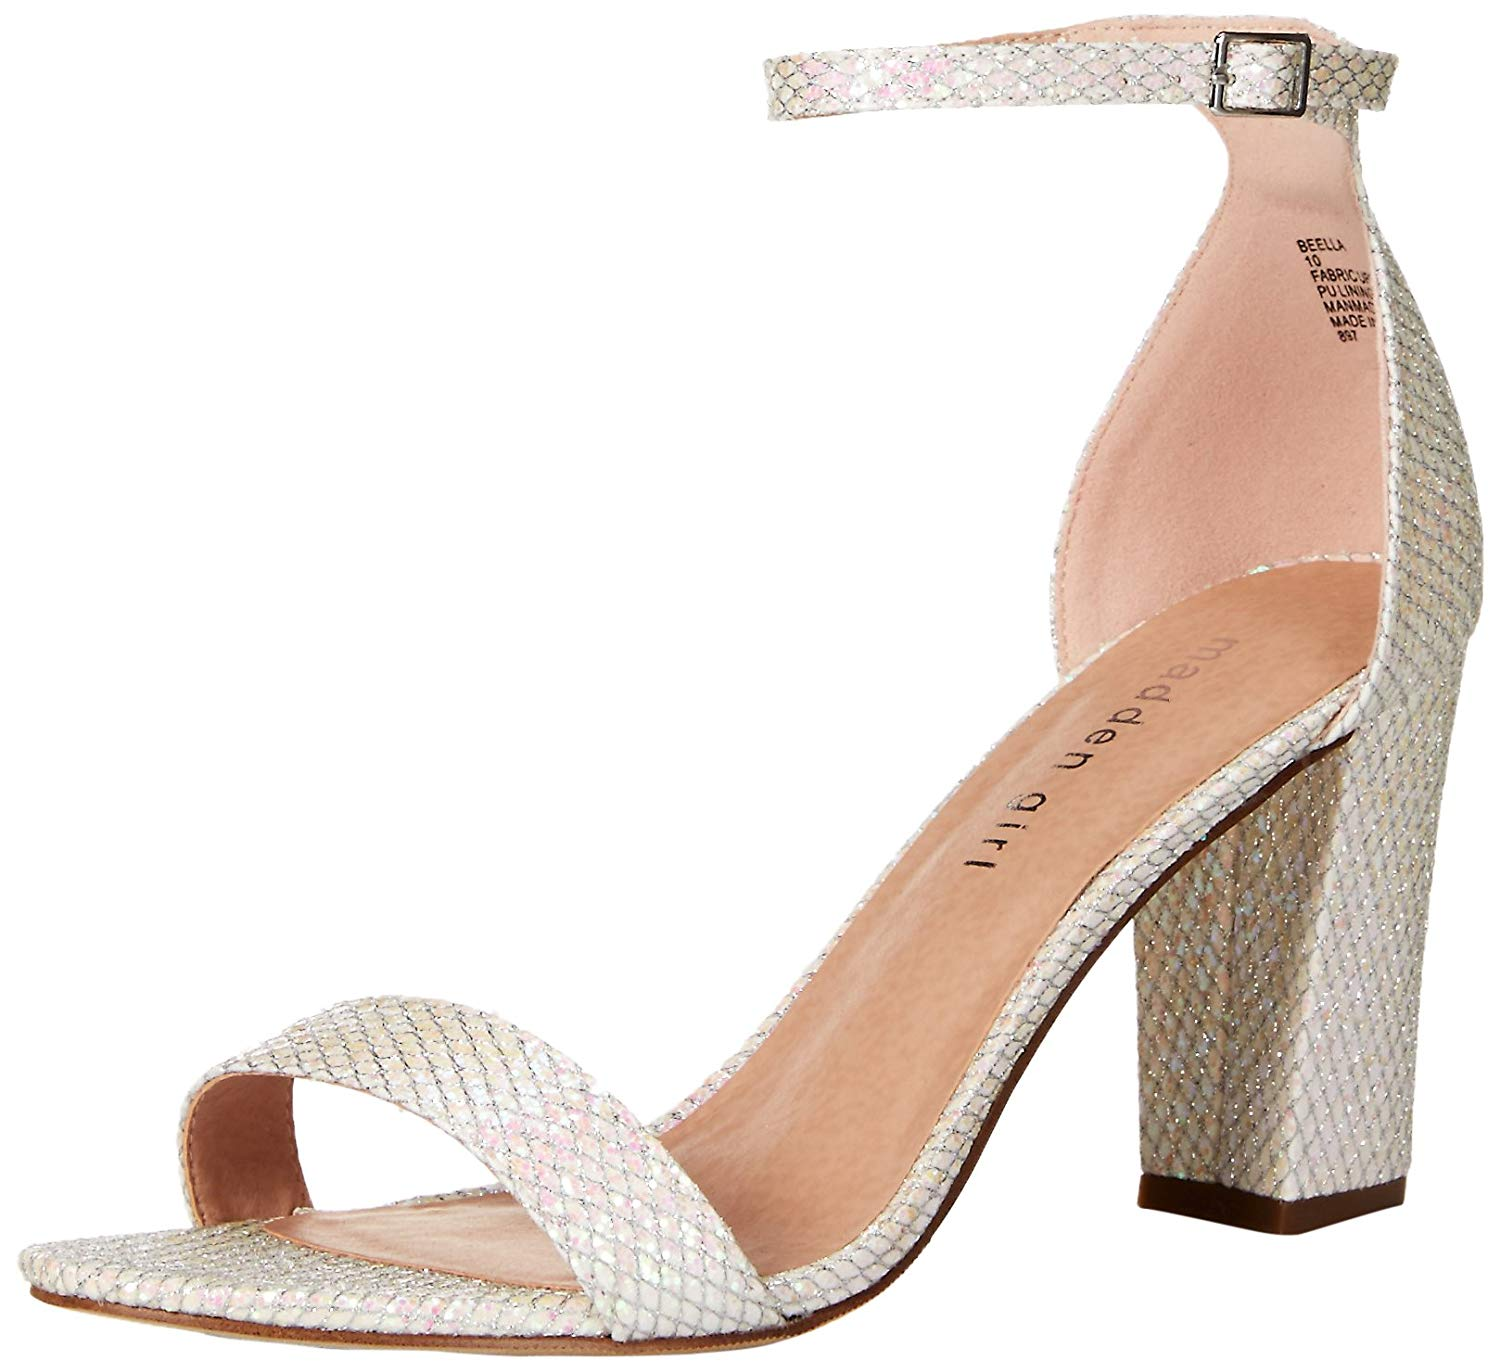 bebeb6f3990 Madden Girl Womens Beella Fabric Open Toe Casual Ankle Strap Sandals ...